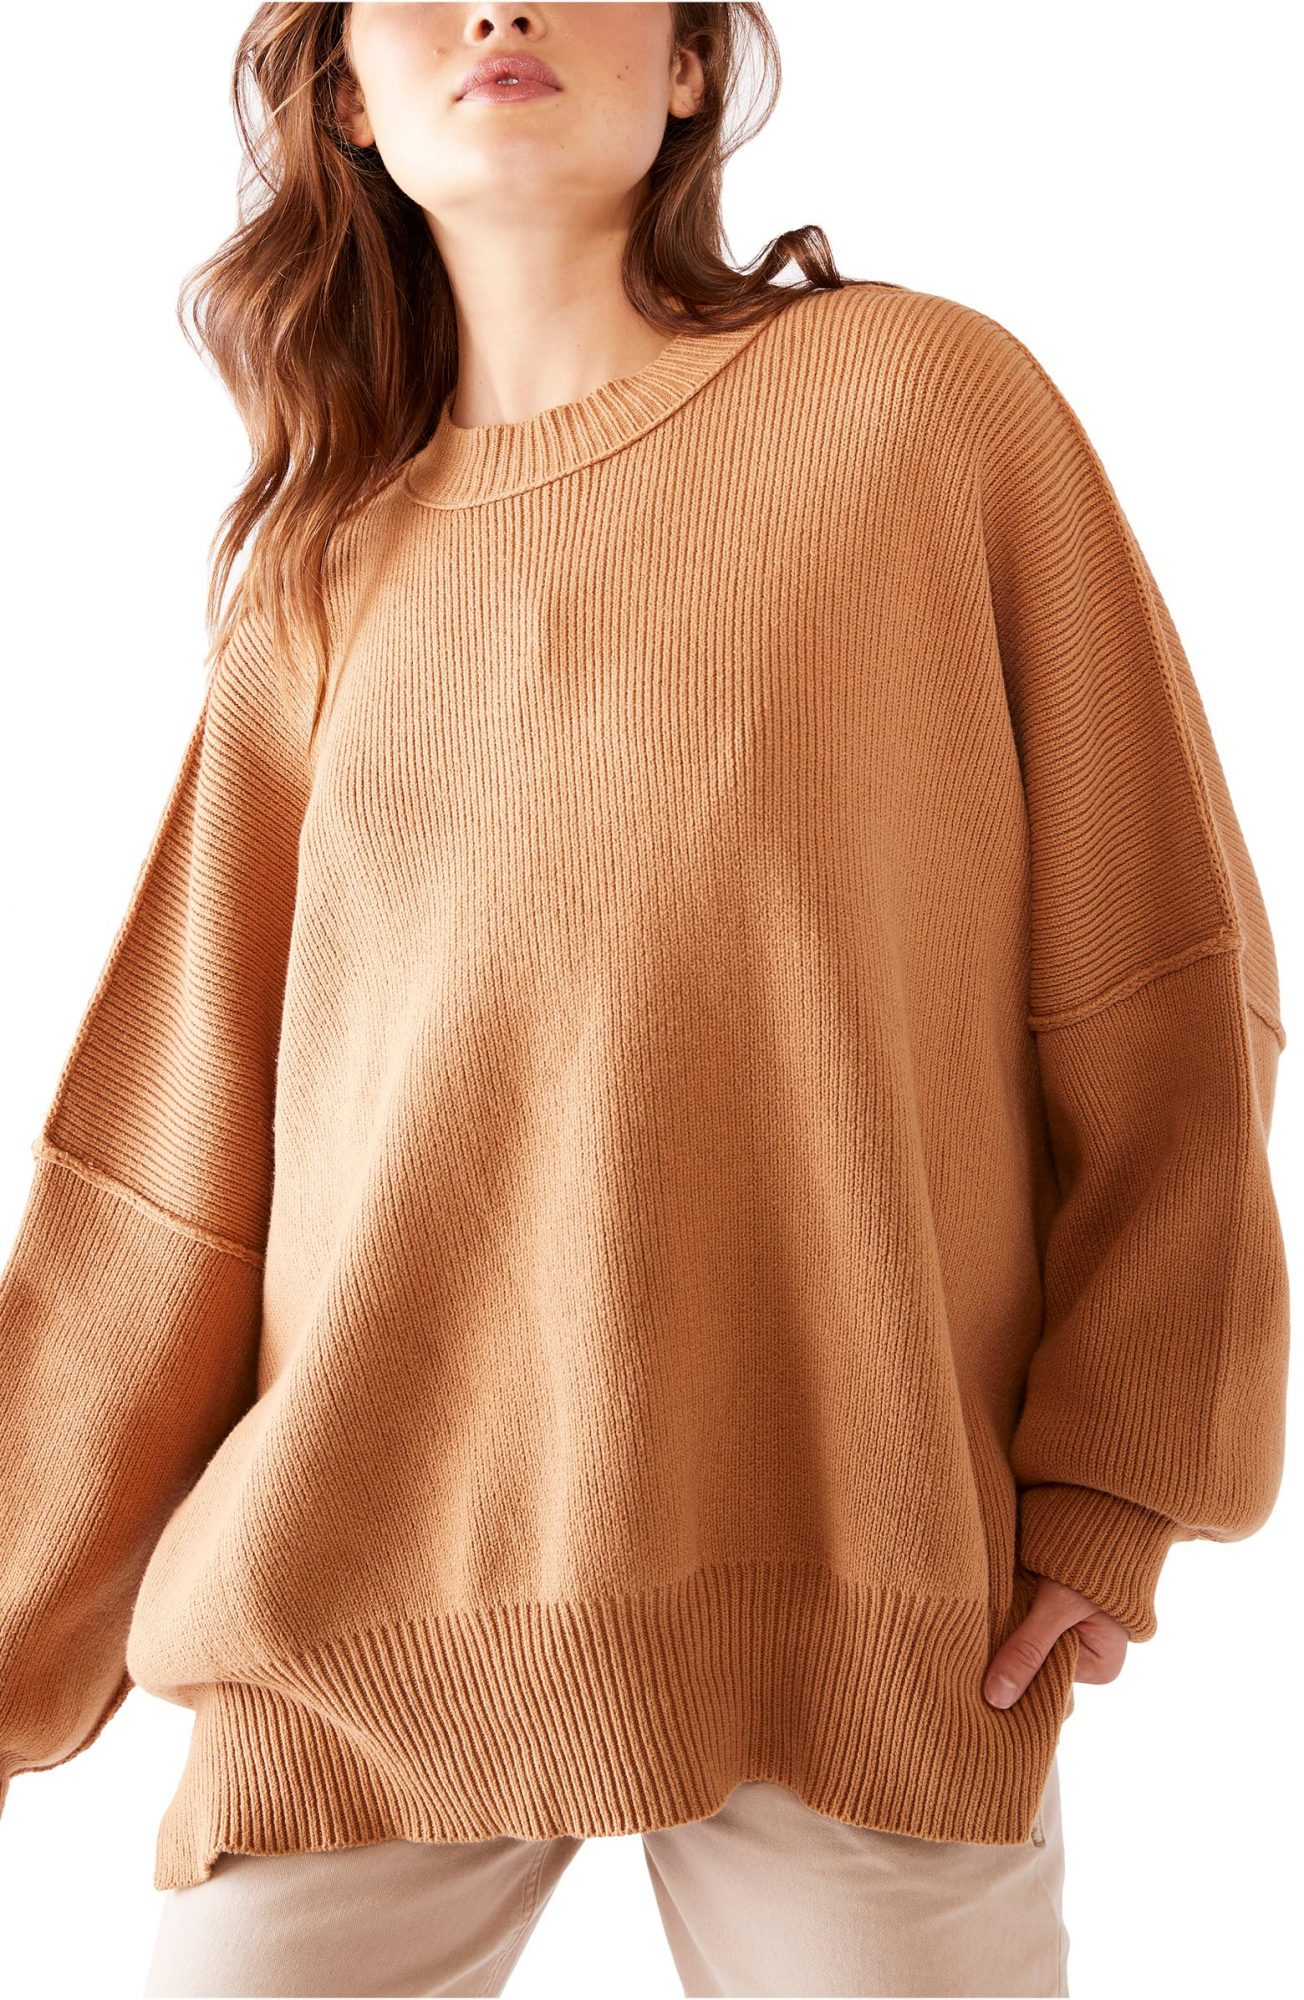 nordstrom free people sweater